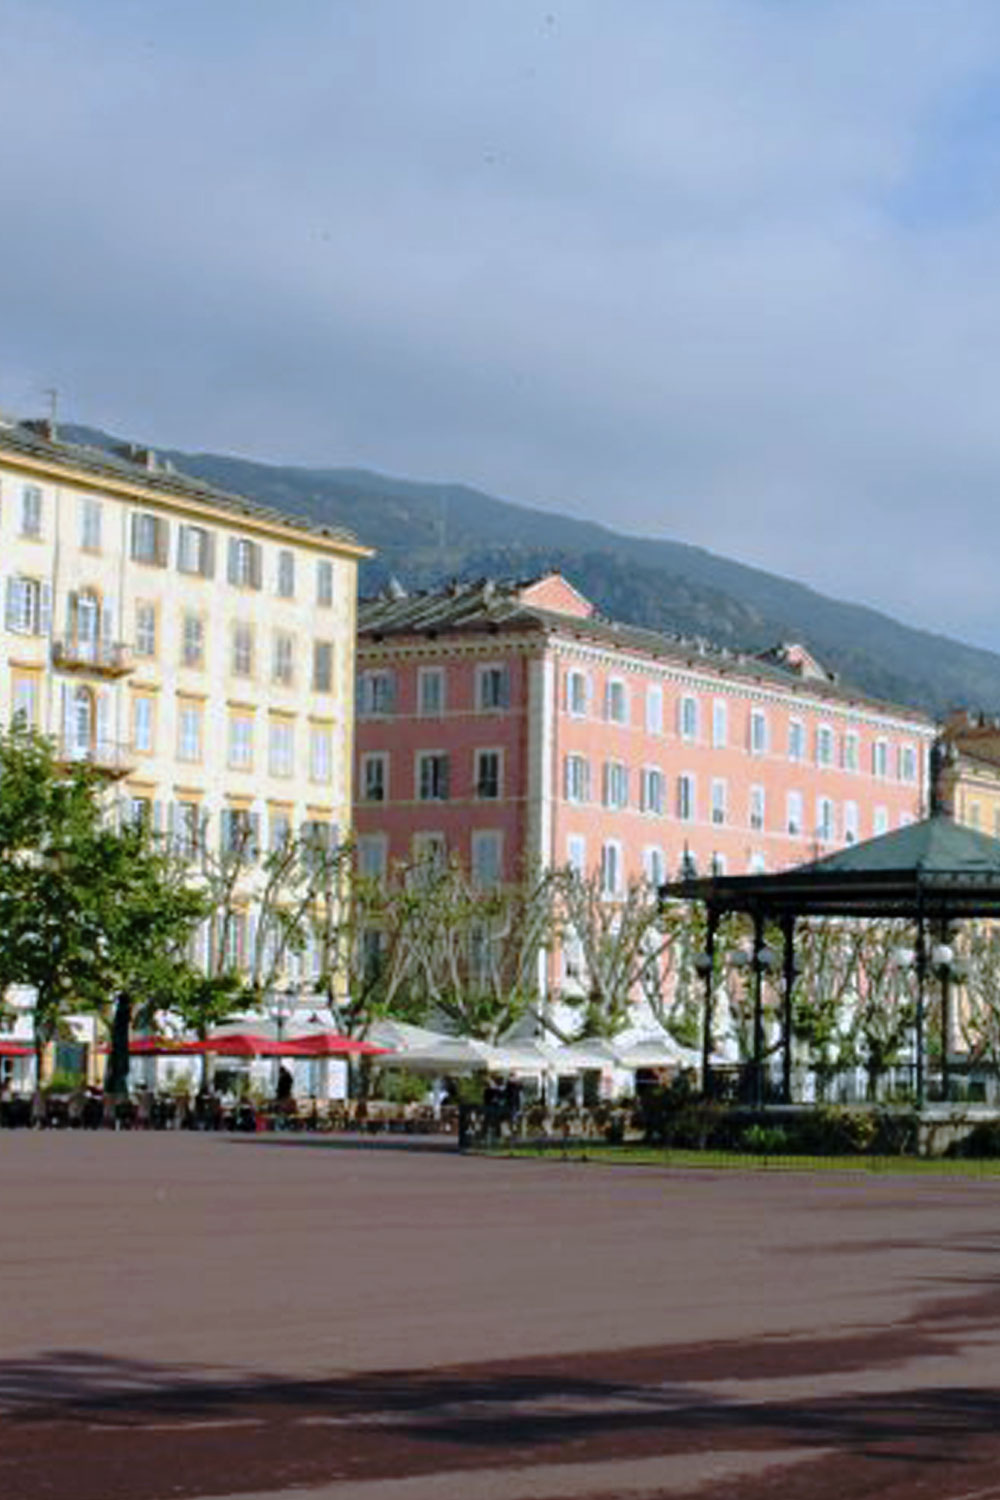 Place Saint Nicolas in the city of Bastia